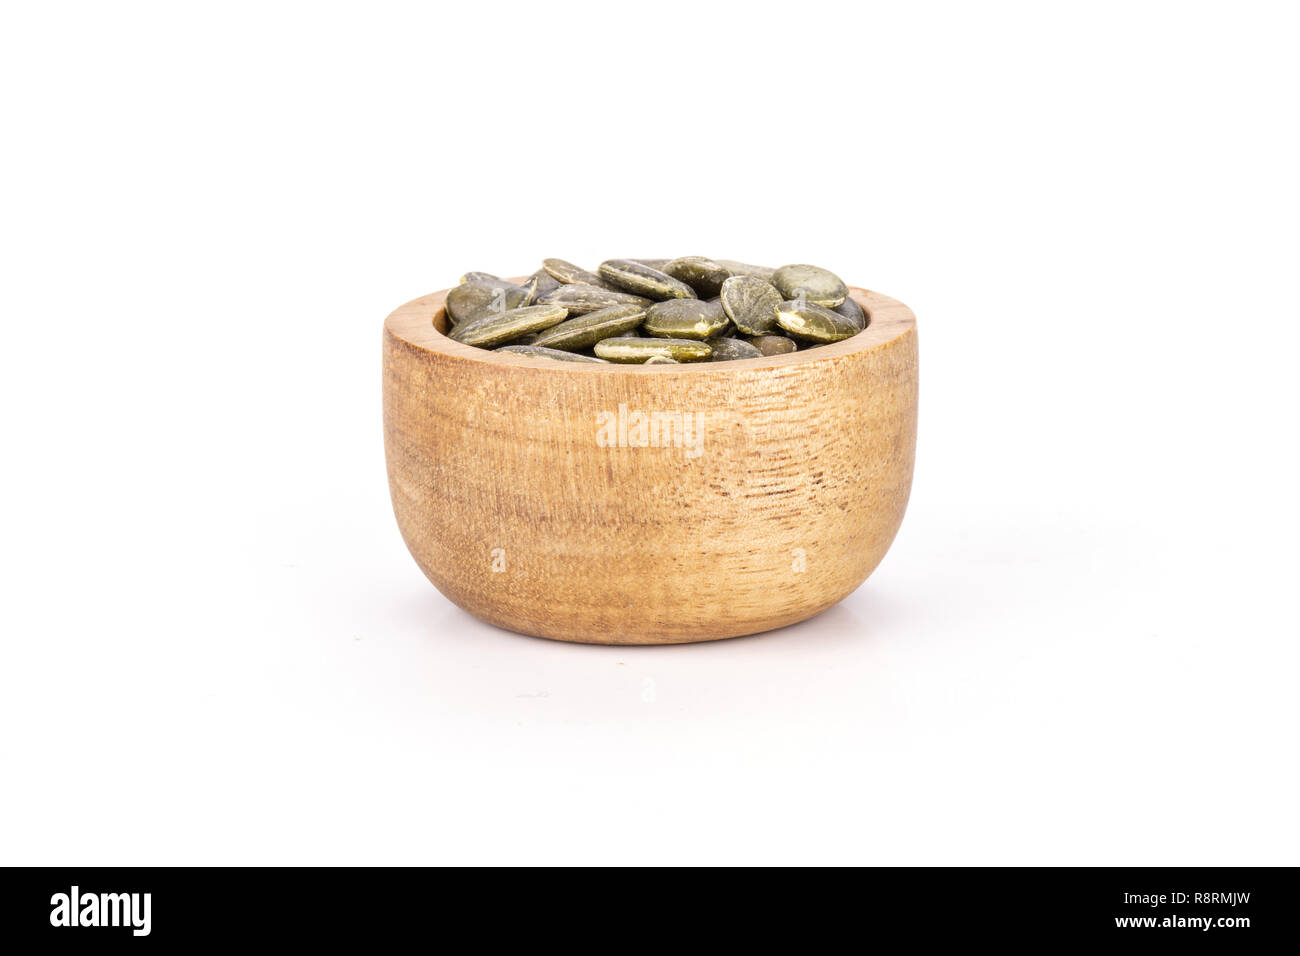 Lot of whole hulled pumpkin seeds with wooden bowl isolated on white background Stock Photo